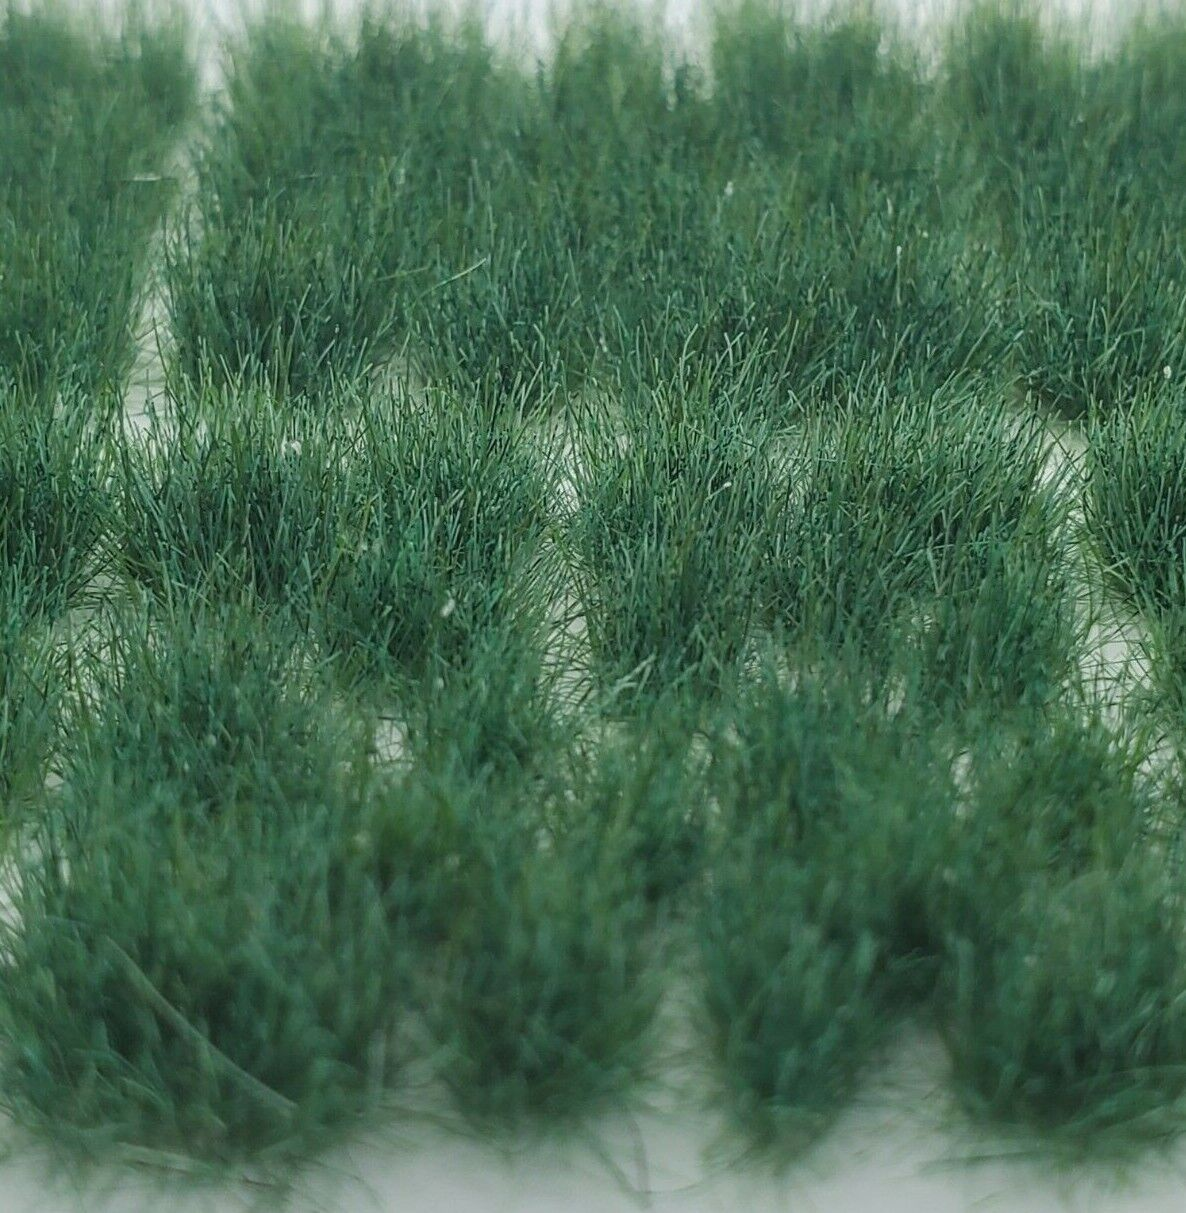 Self Adhesive Static Grass Tufts for Miniature Scenery -Plain Green- 8mm